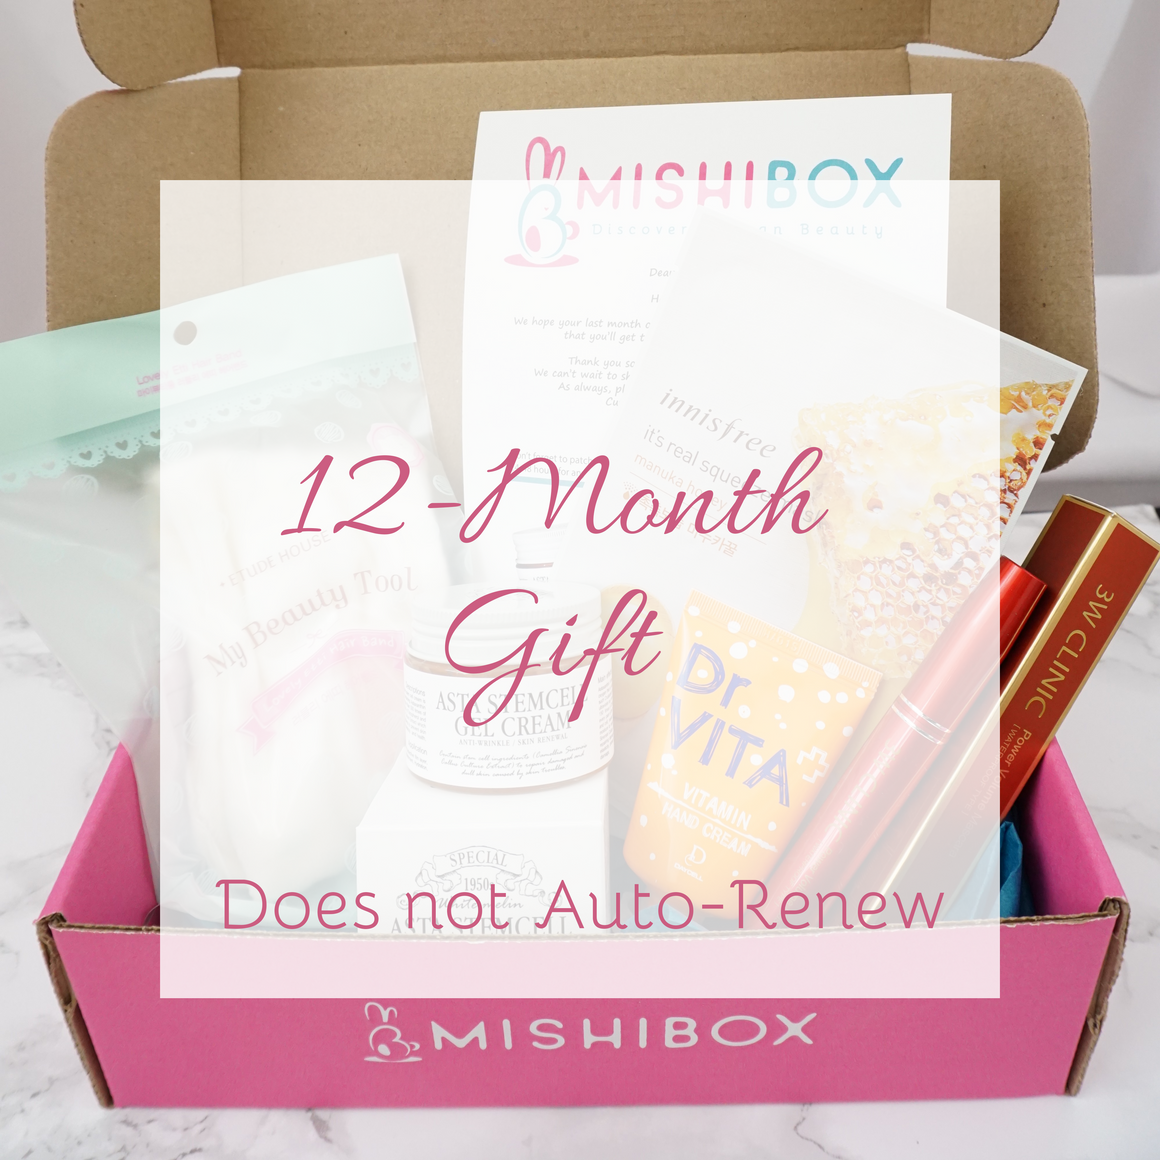 MISHIBOX GIFT Subscription - 12 Months - STARTS WITH MARCH BOX